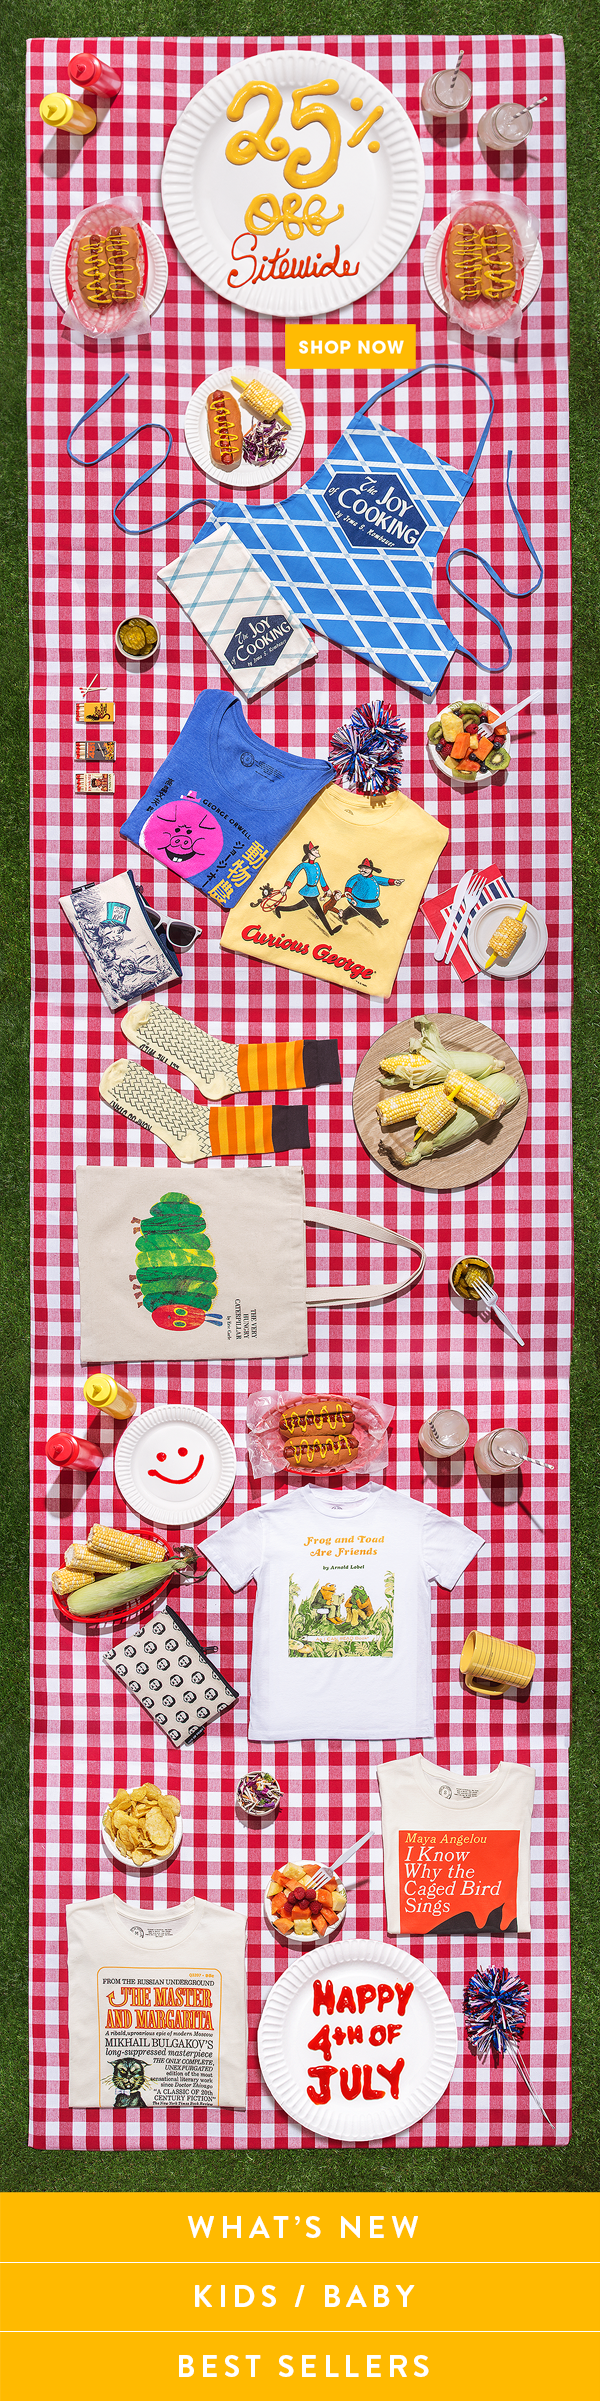 picnic_email.png